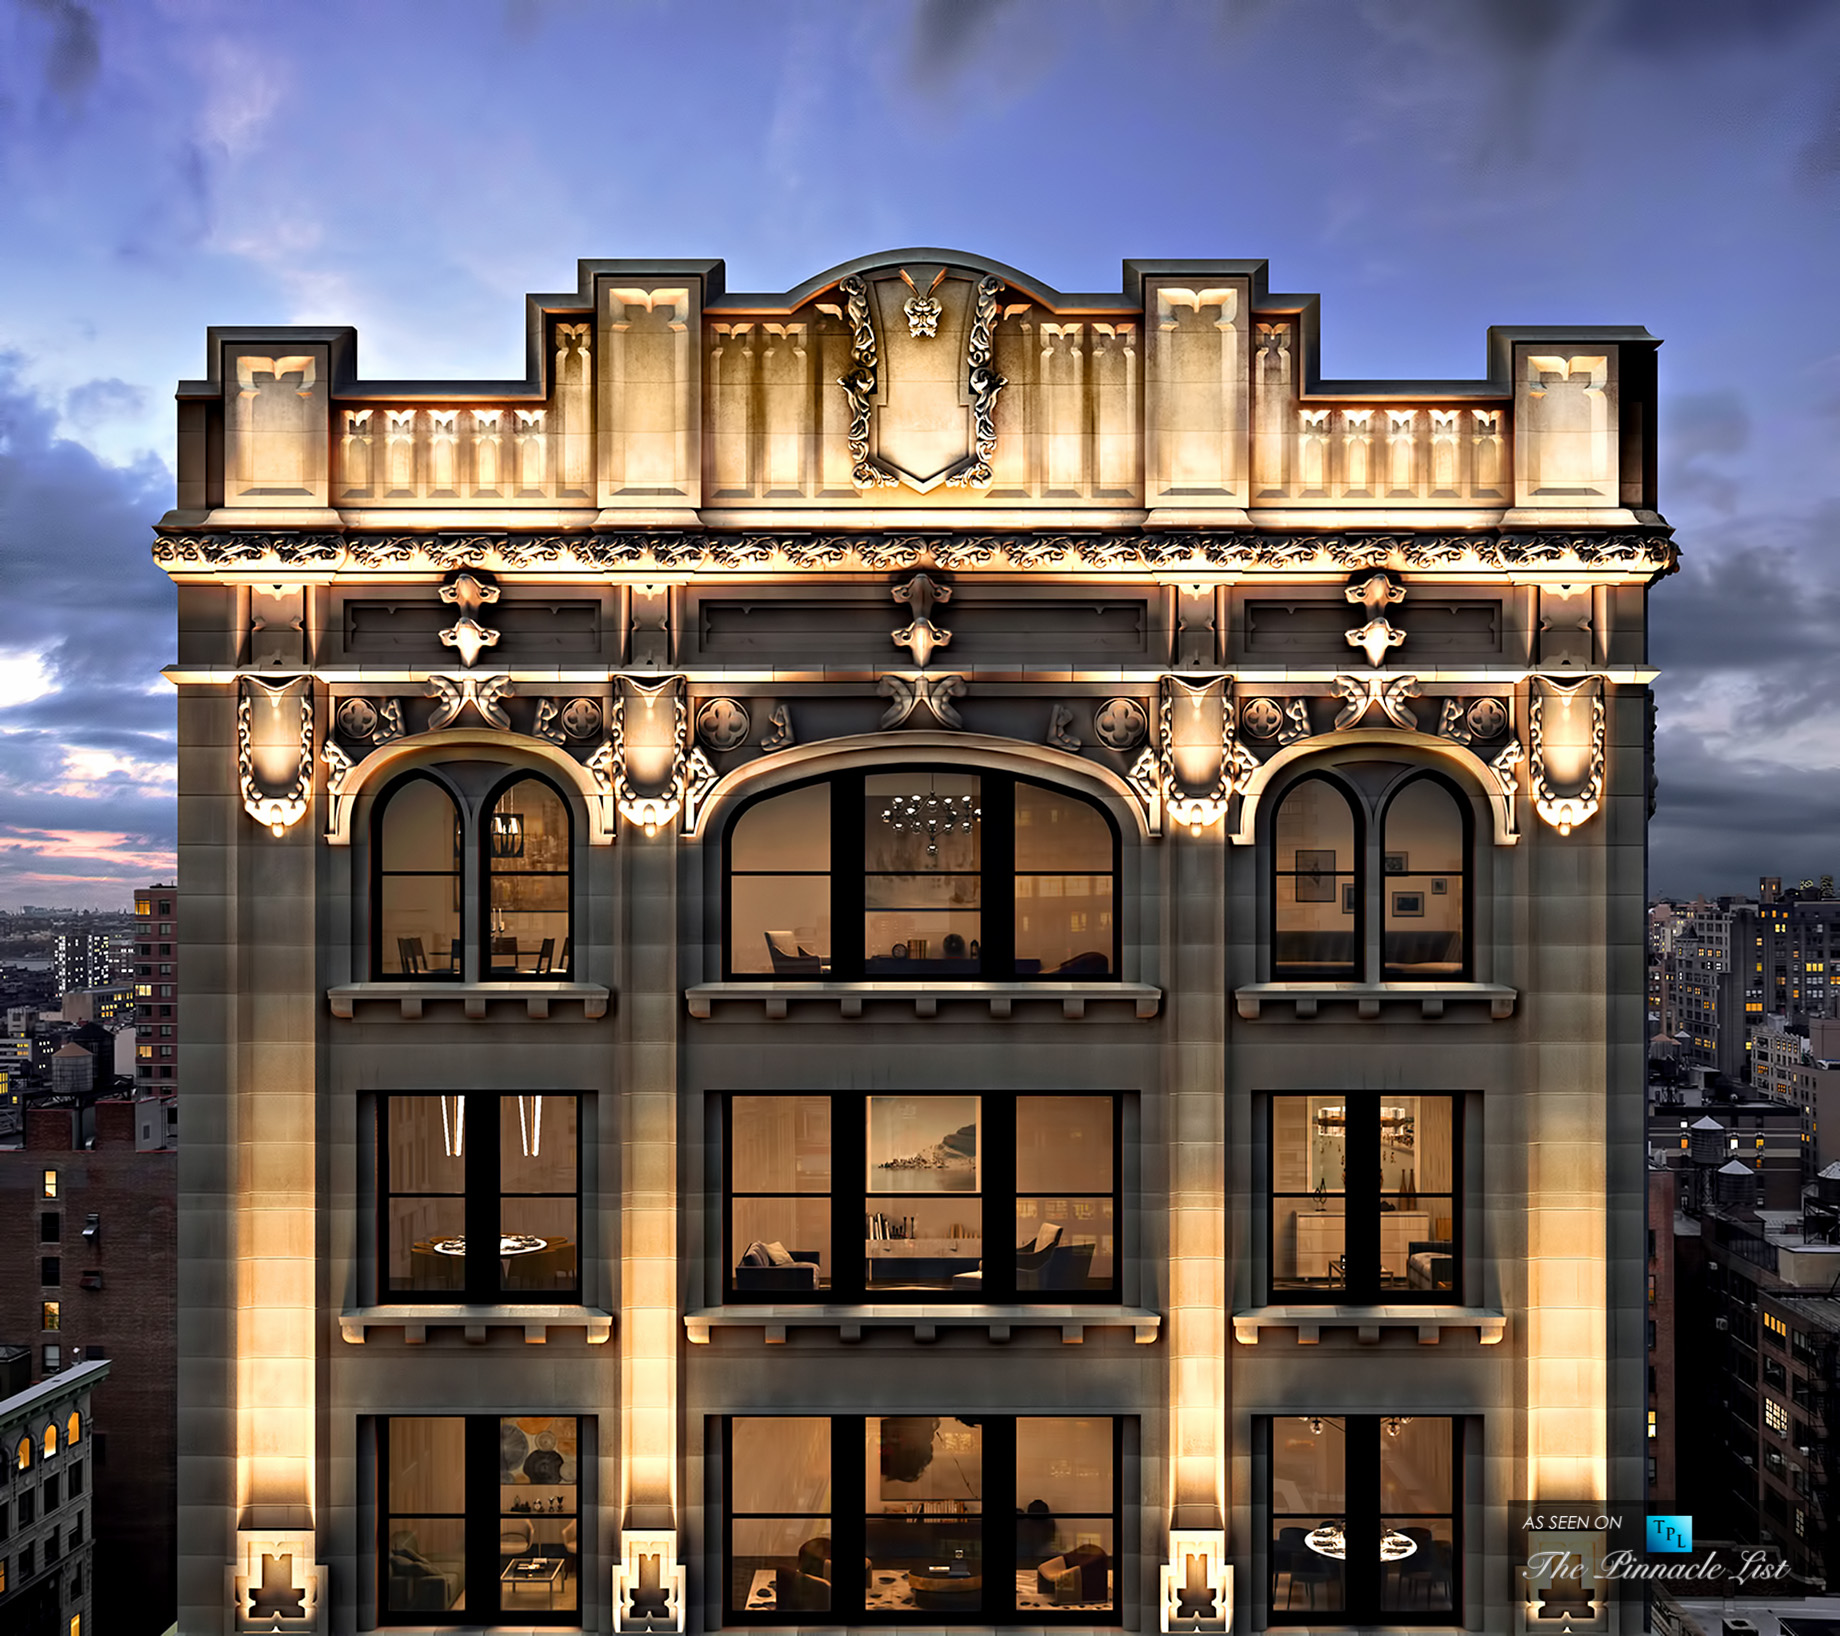 212 Fifth Avenue - Top 5 Luxury Real Estate Projects to Watch in New York City